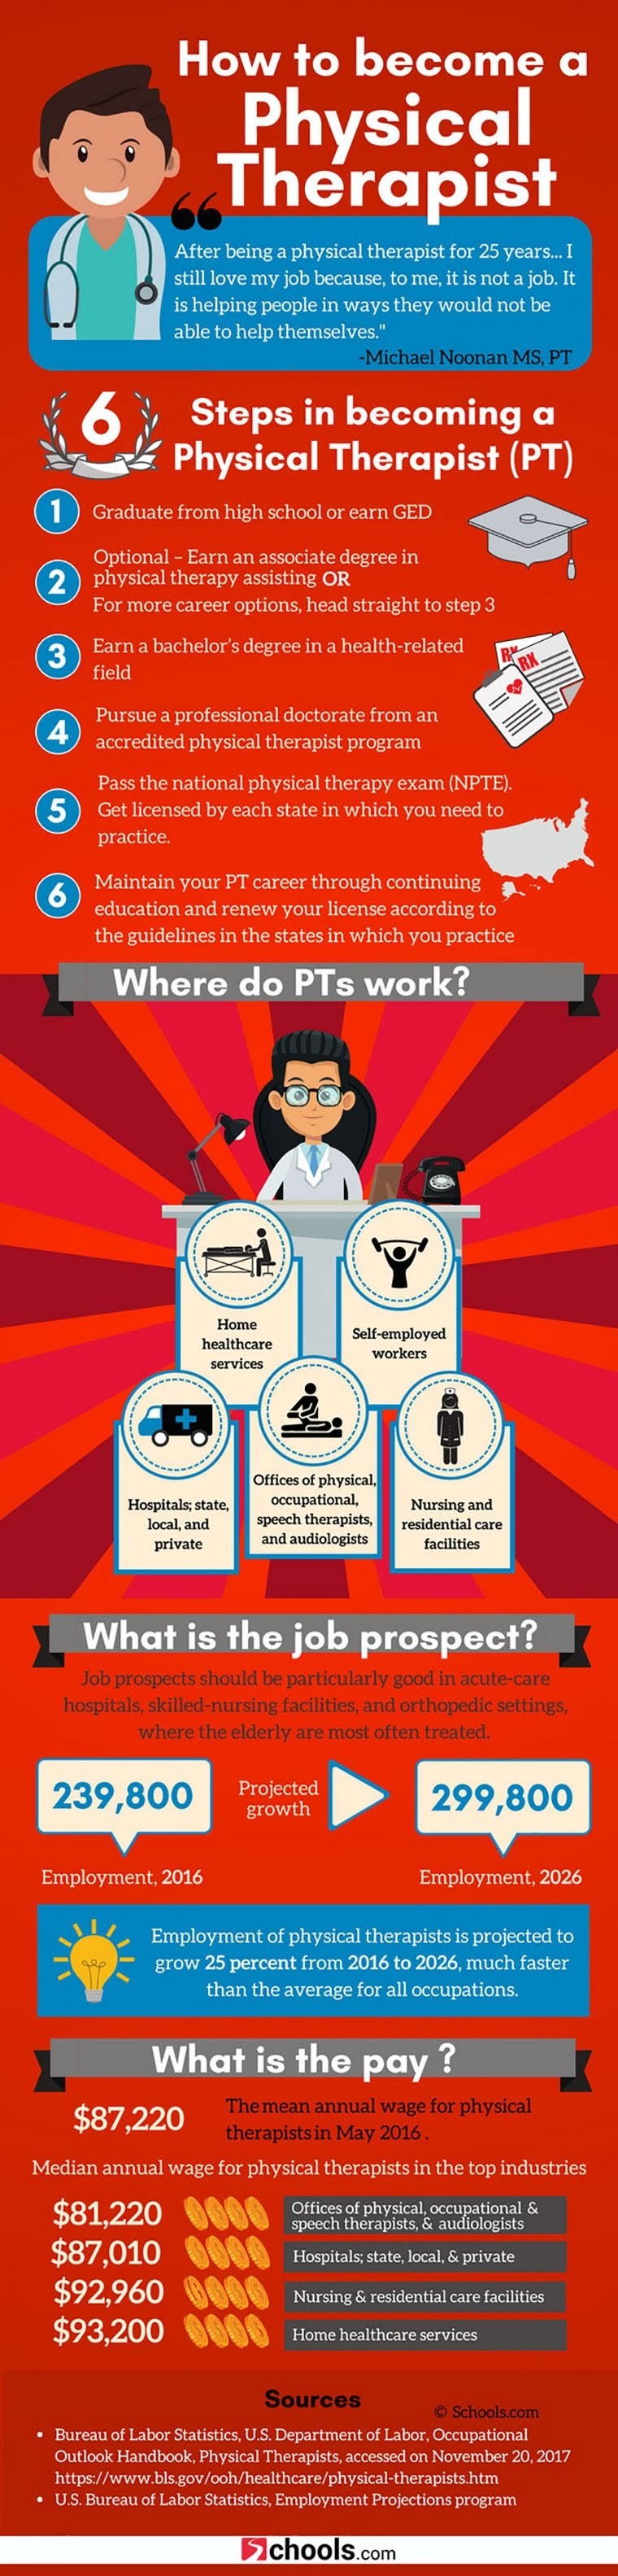 How To Become a Physical Therapist #Infographic